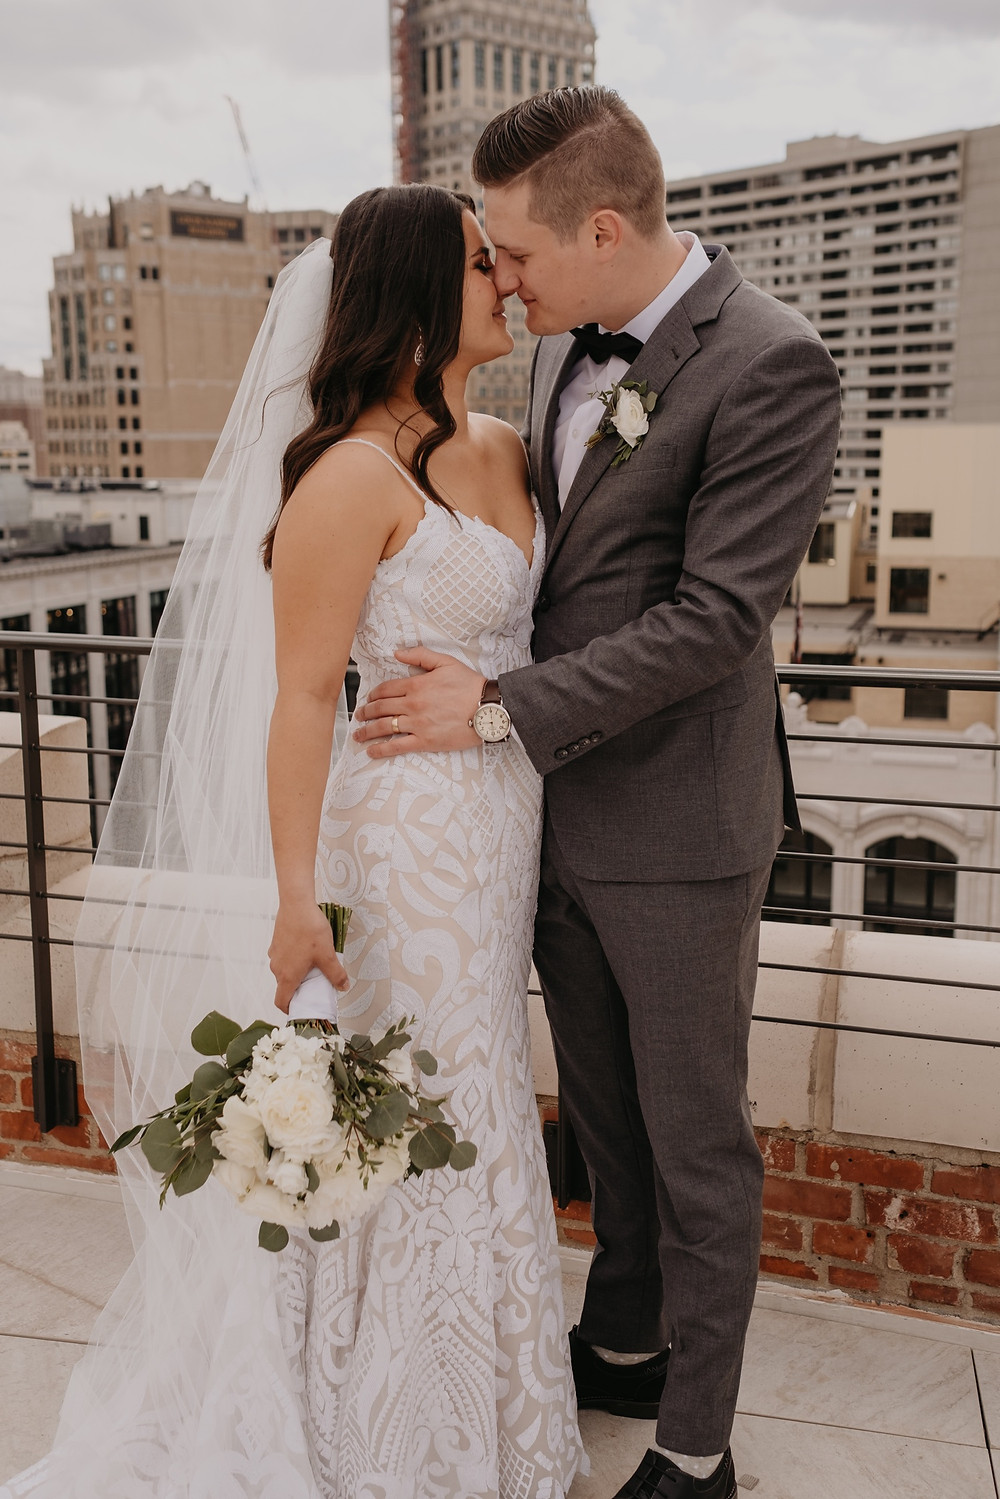 Bride and groom wedding day photo in Detroit. Photographed by Nicole Leanne Photography.